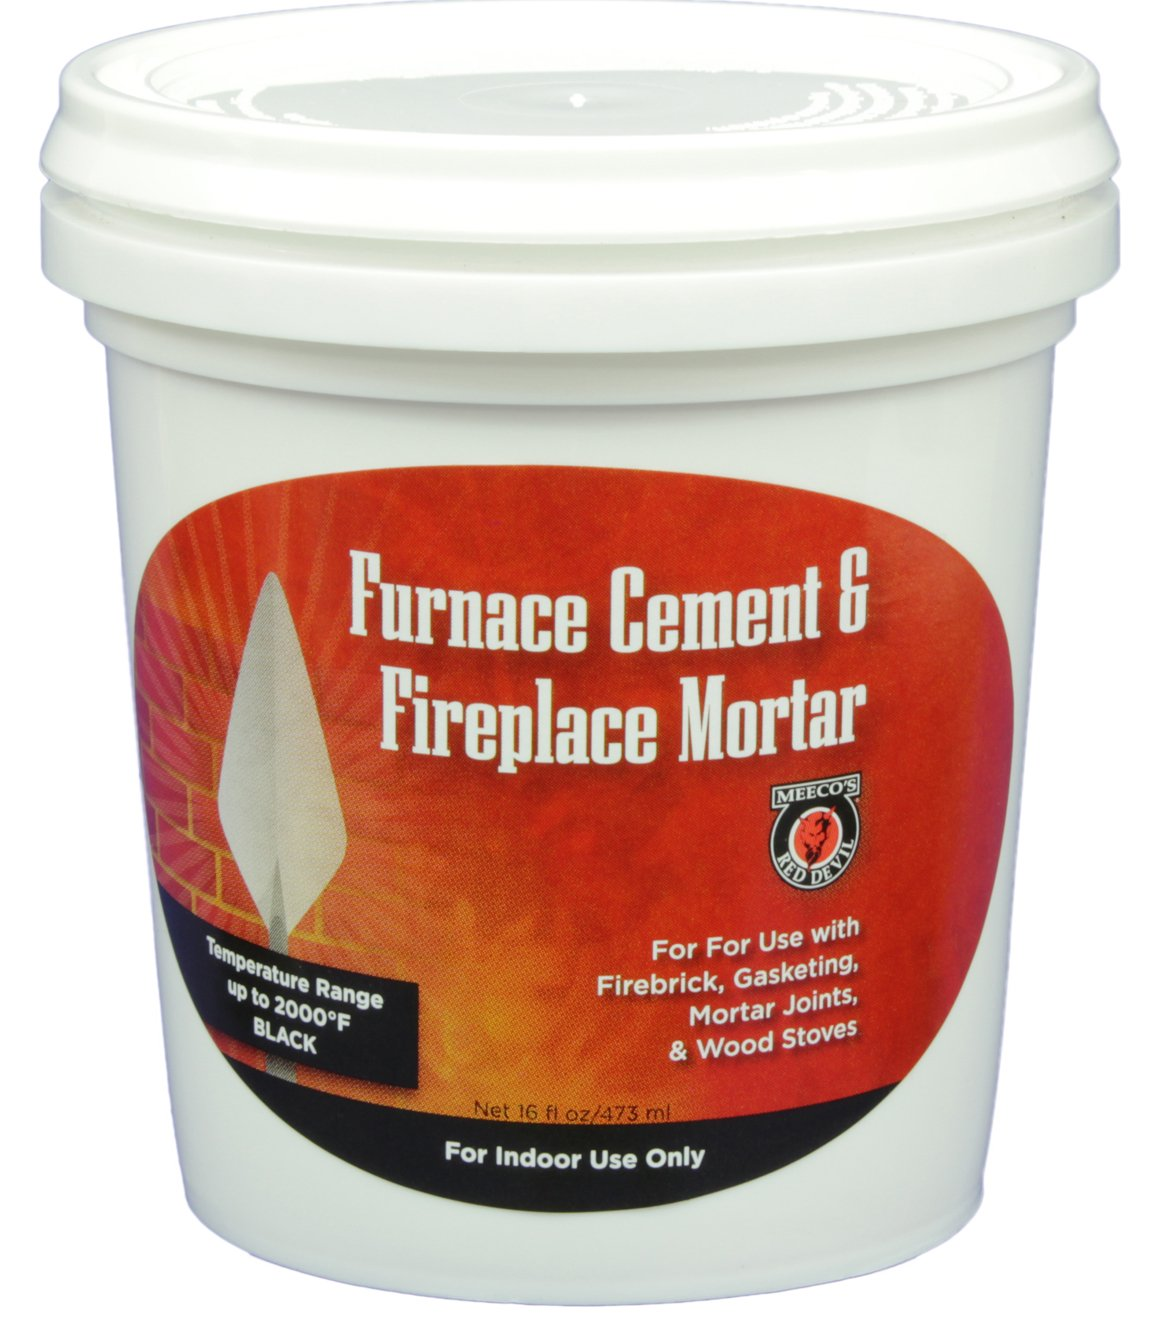 MEECO'S RED DEVIL 1333 Furnace Cement and Fireplace Mortar